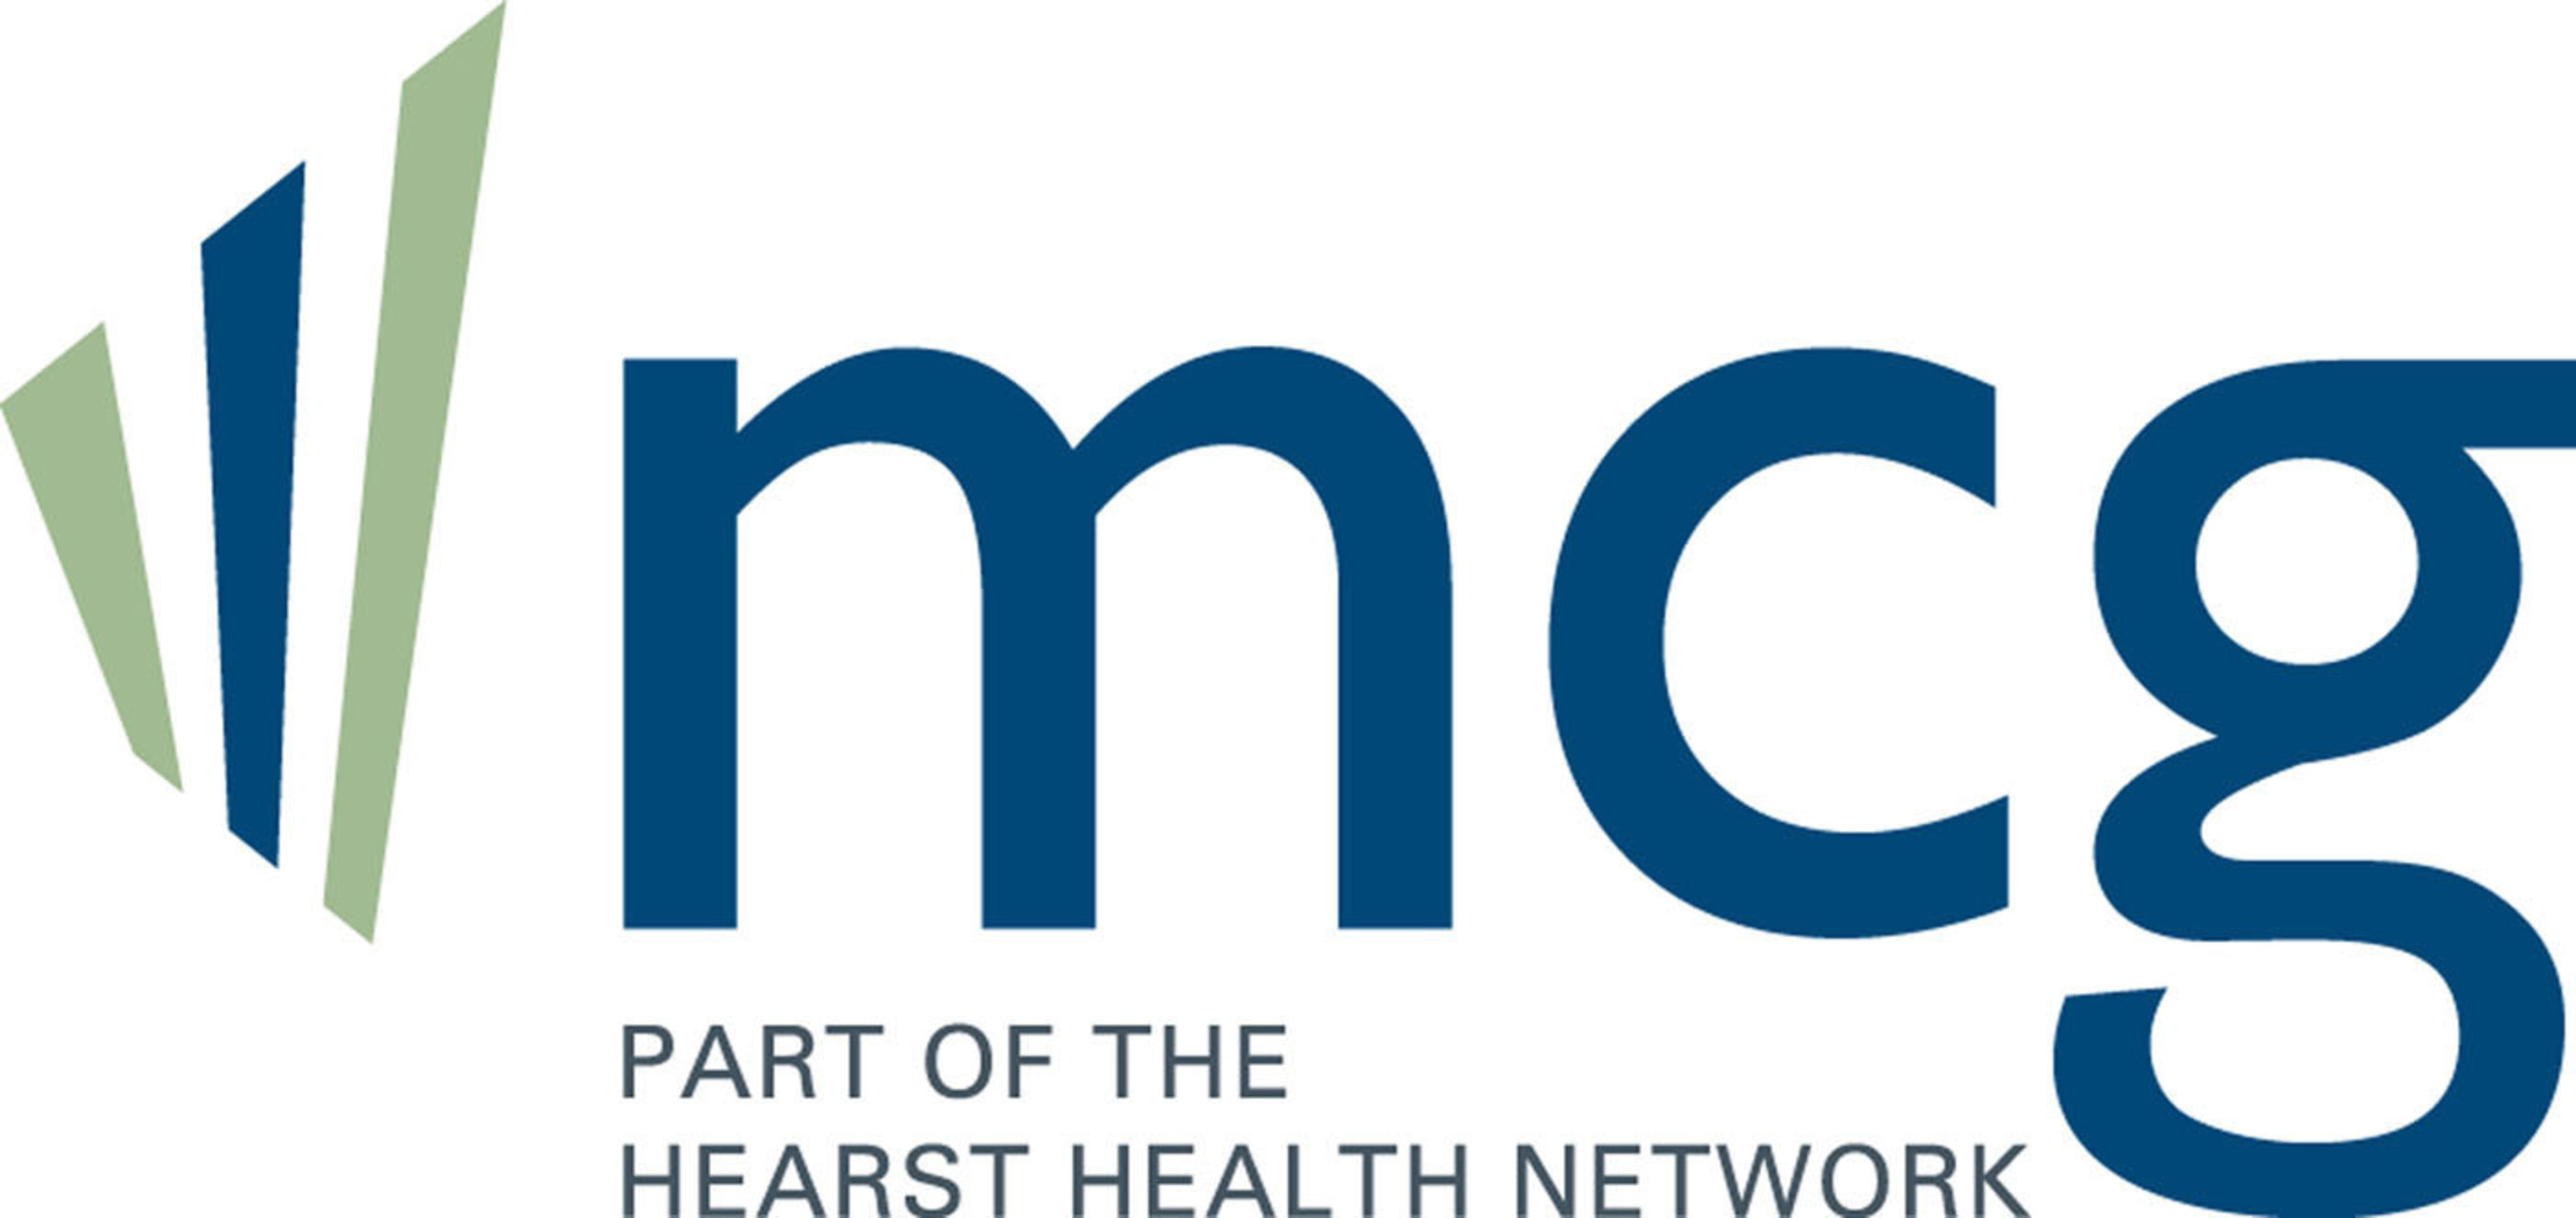 MCG, part of the Hearst Health network